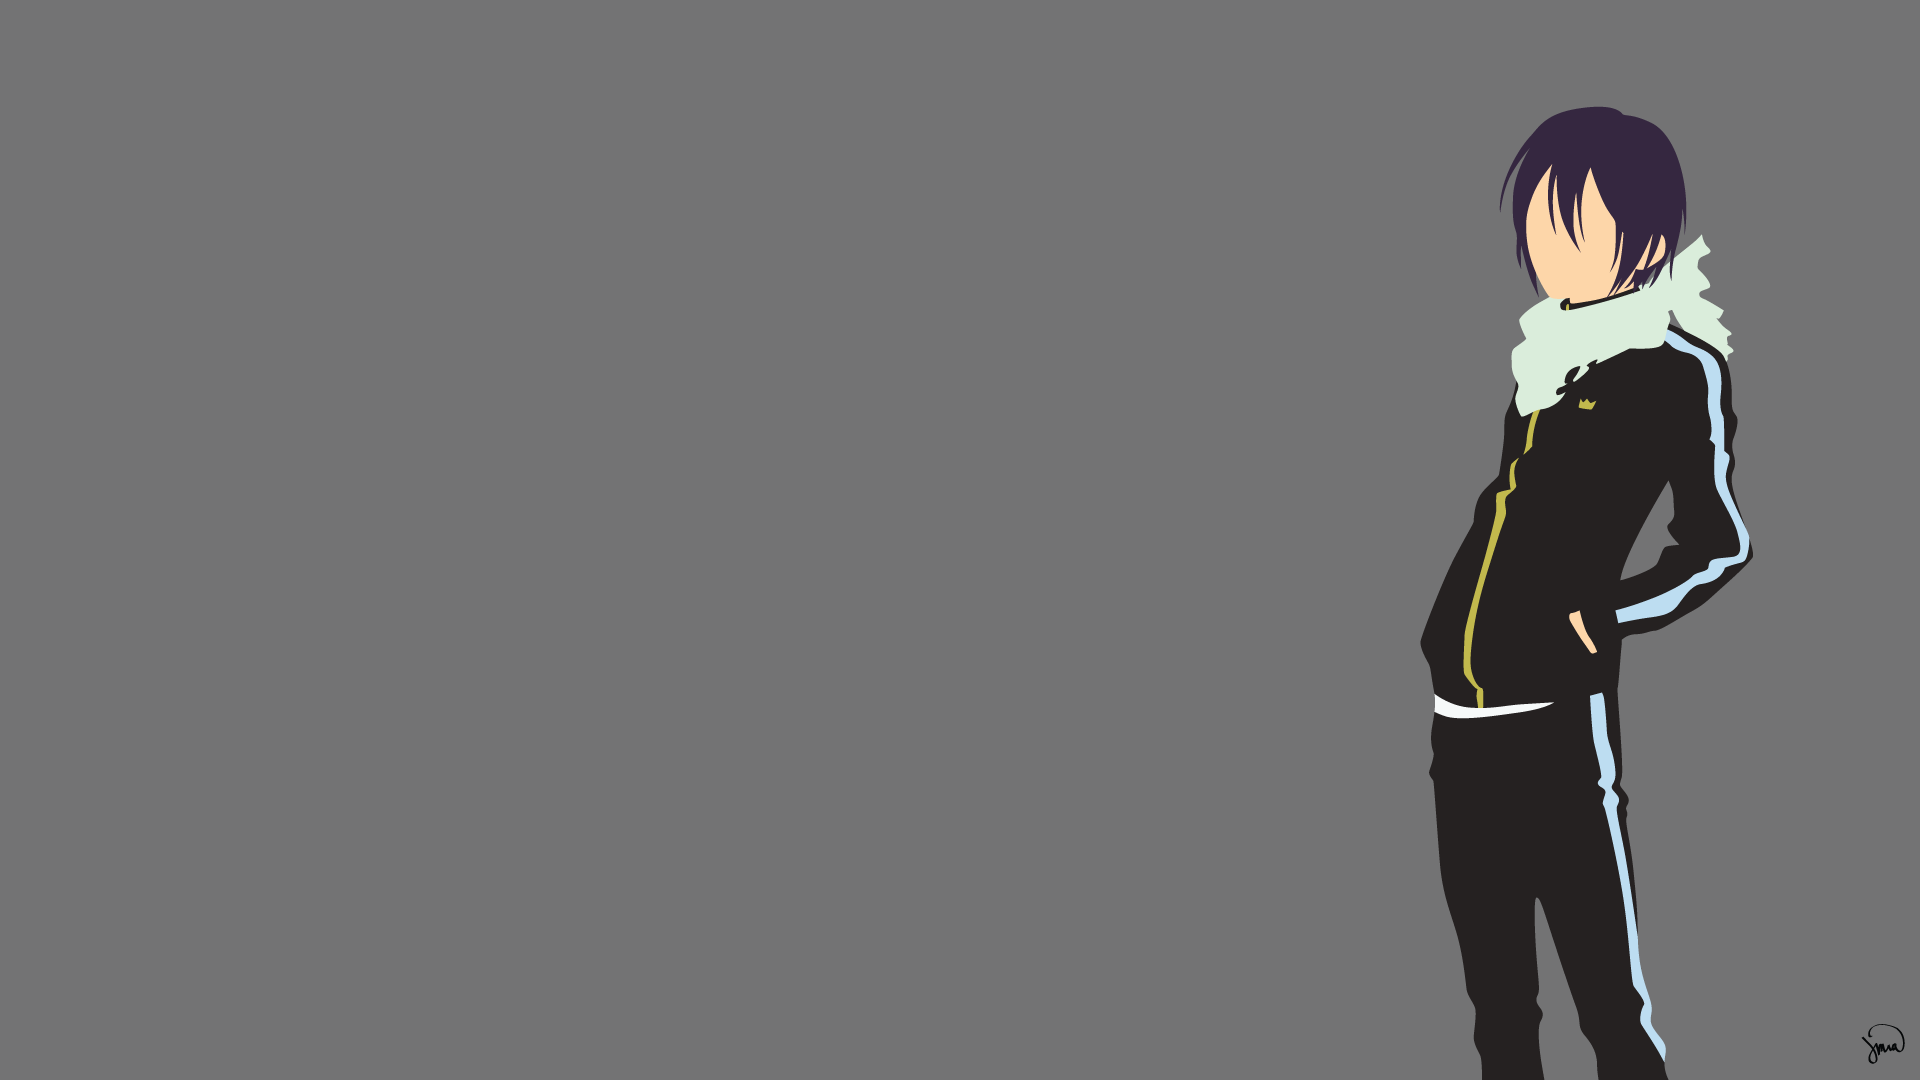 Yato Noragami Minimalist Wallpaper By Greenmapple17  Daily Anime Art